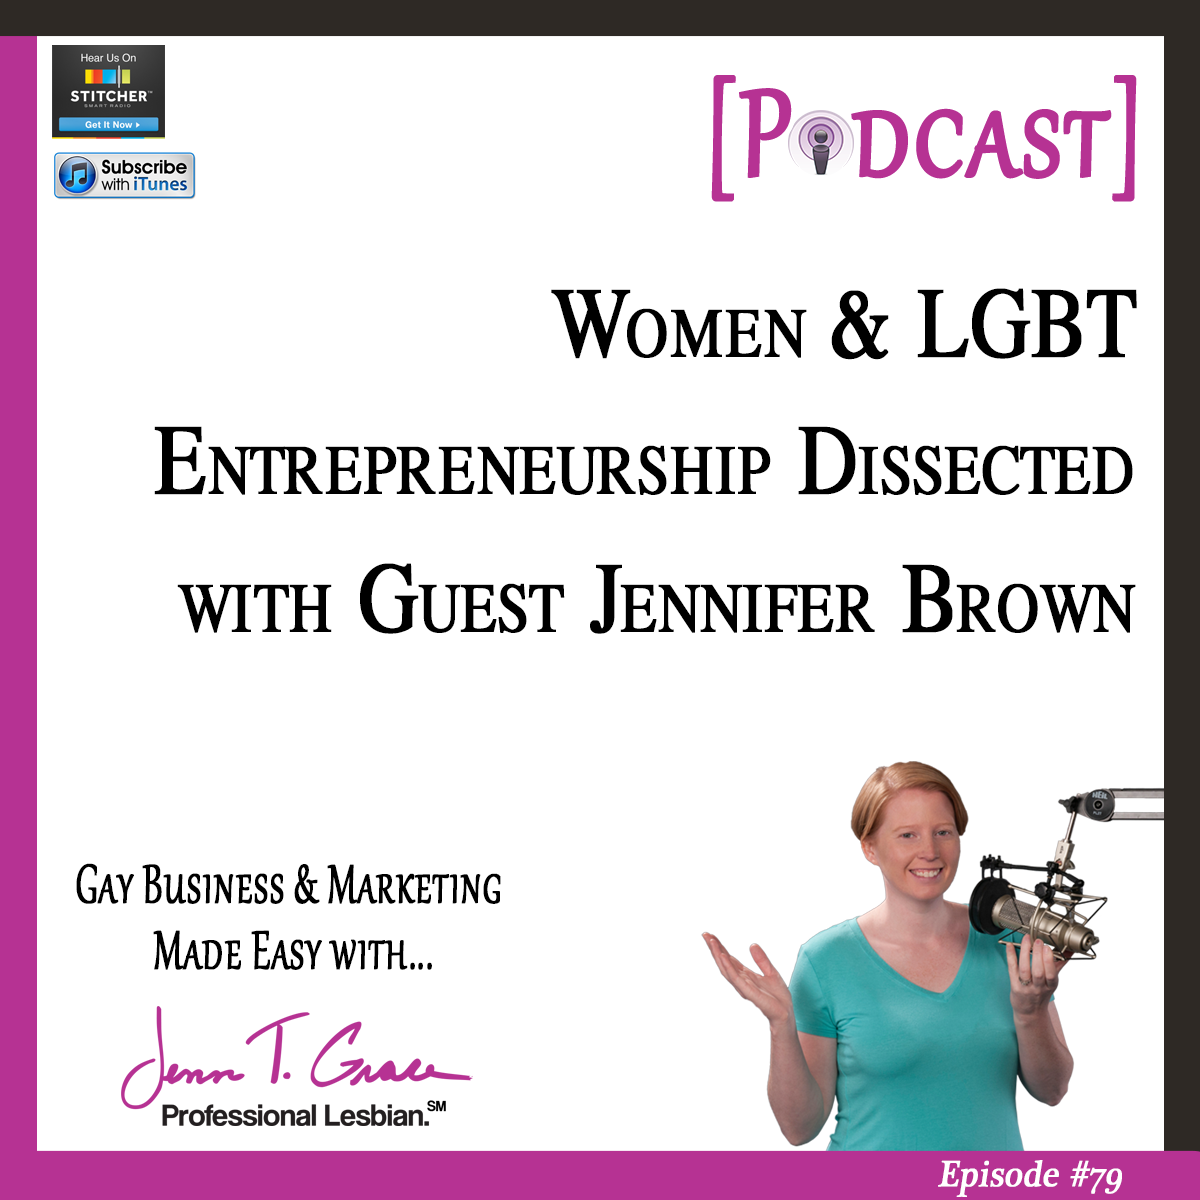 Personal Branding for the LGBTQ Professional - #79: Women & LGBT Entrepreneurship Dissected with Guest Jennifer Brown